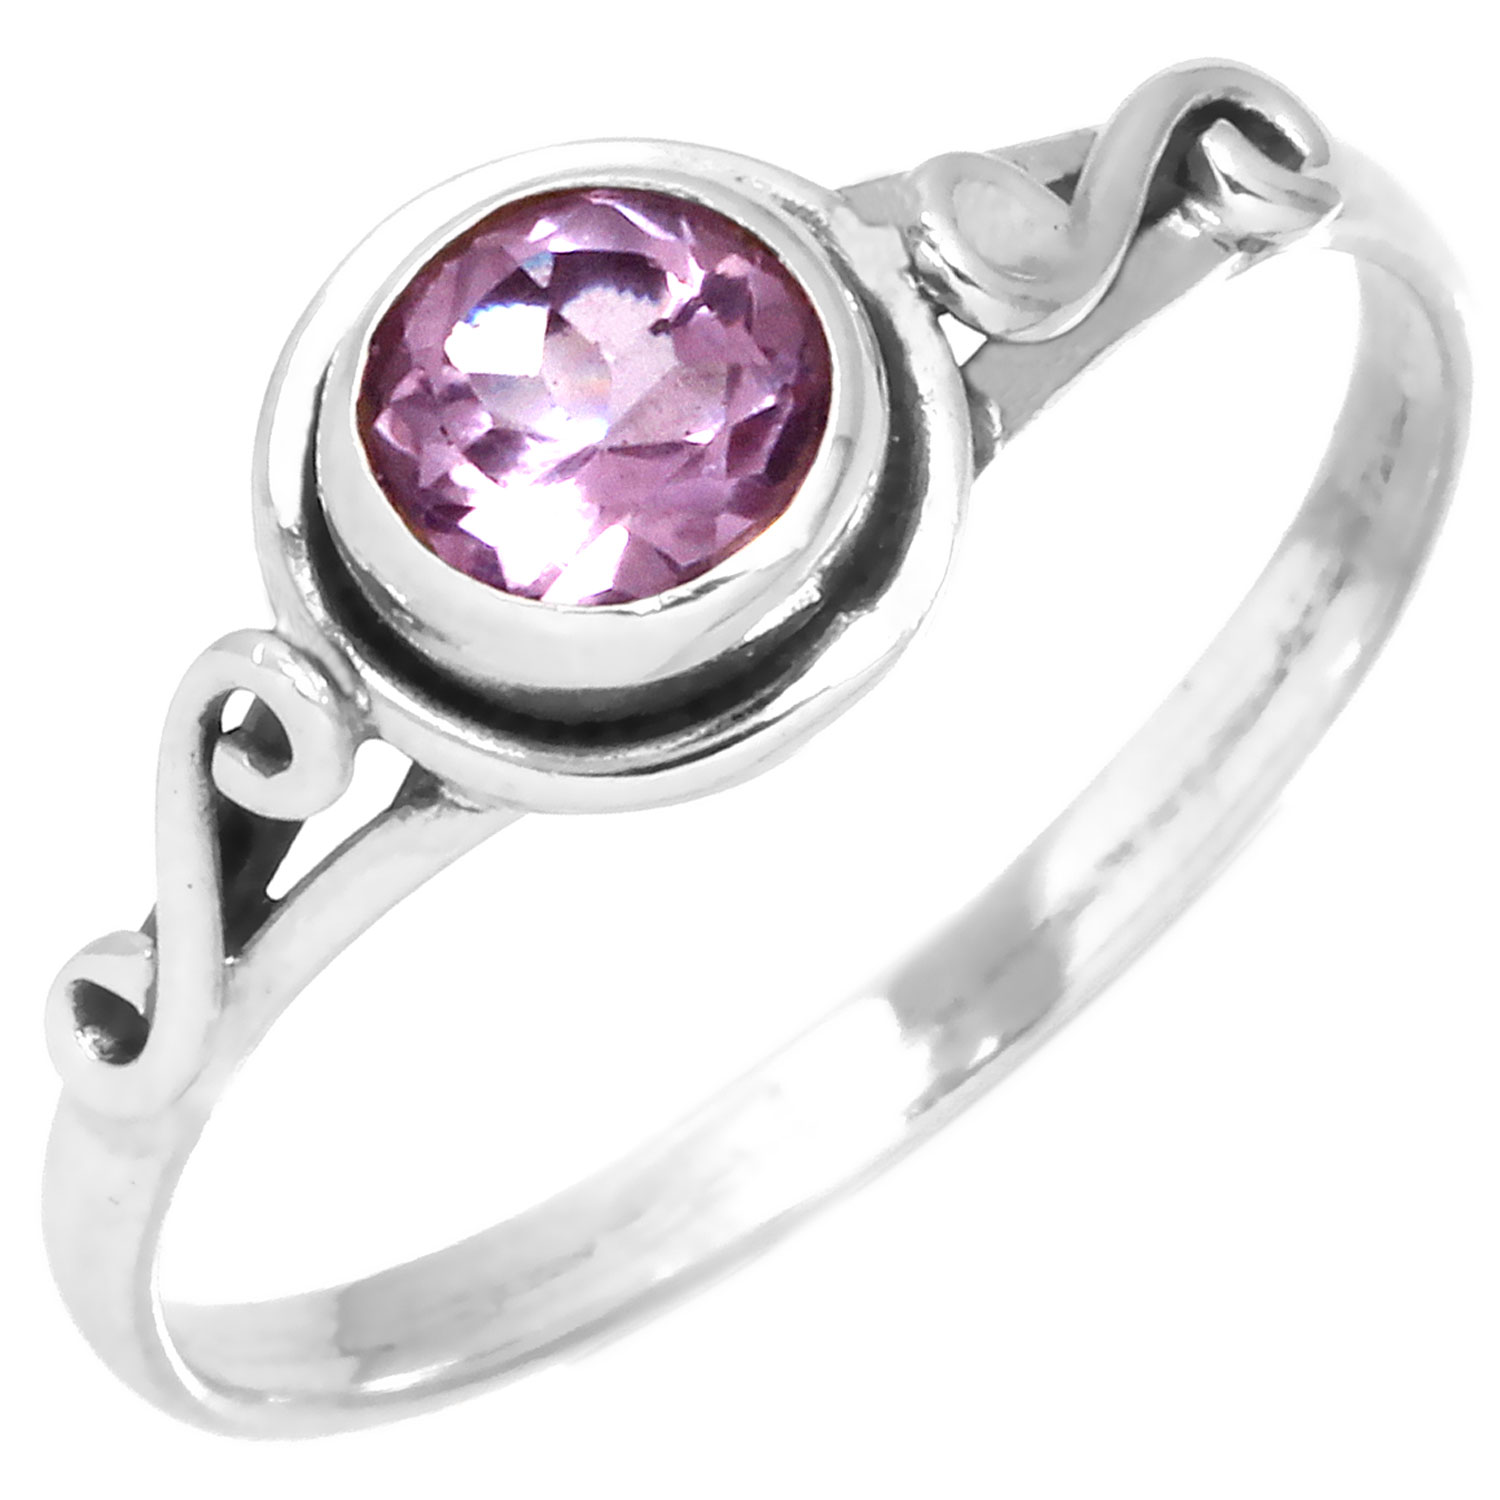 wholesale Sterling Silver Gemstone Ring (rg705amef_ov)